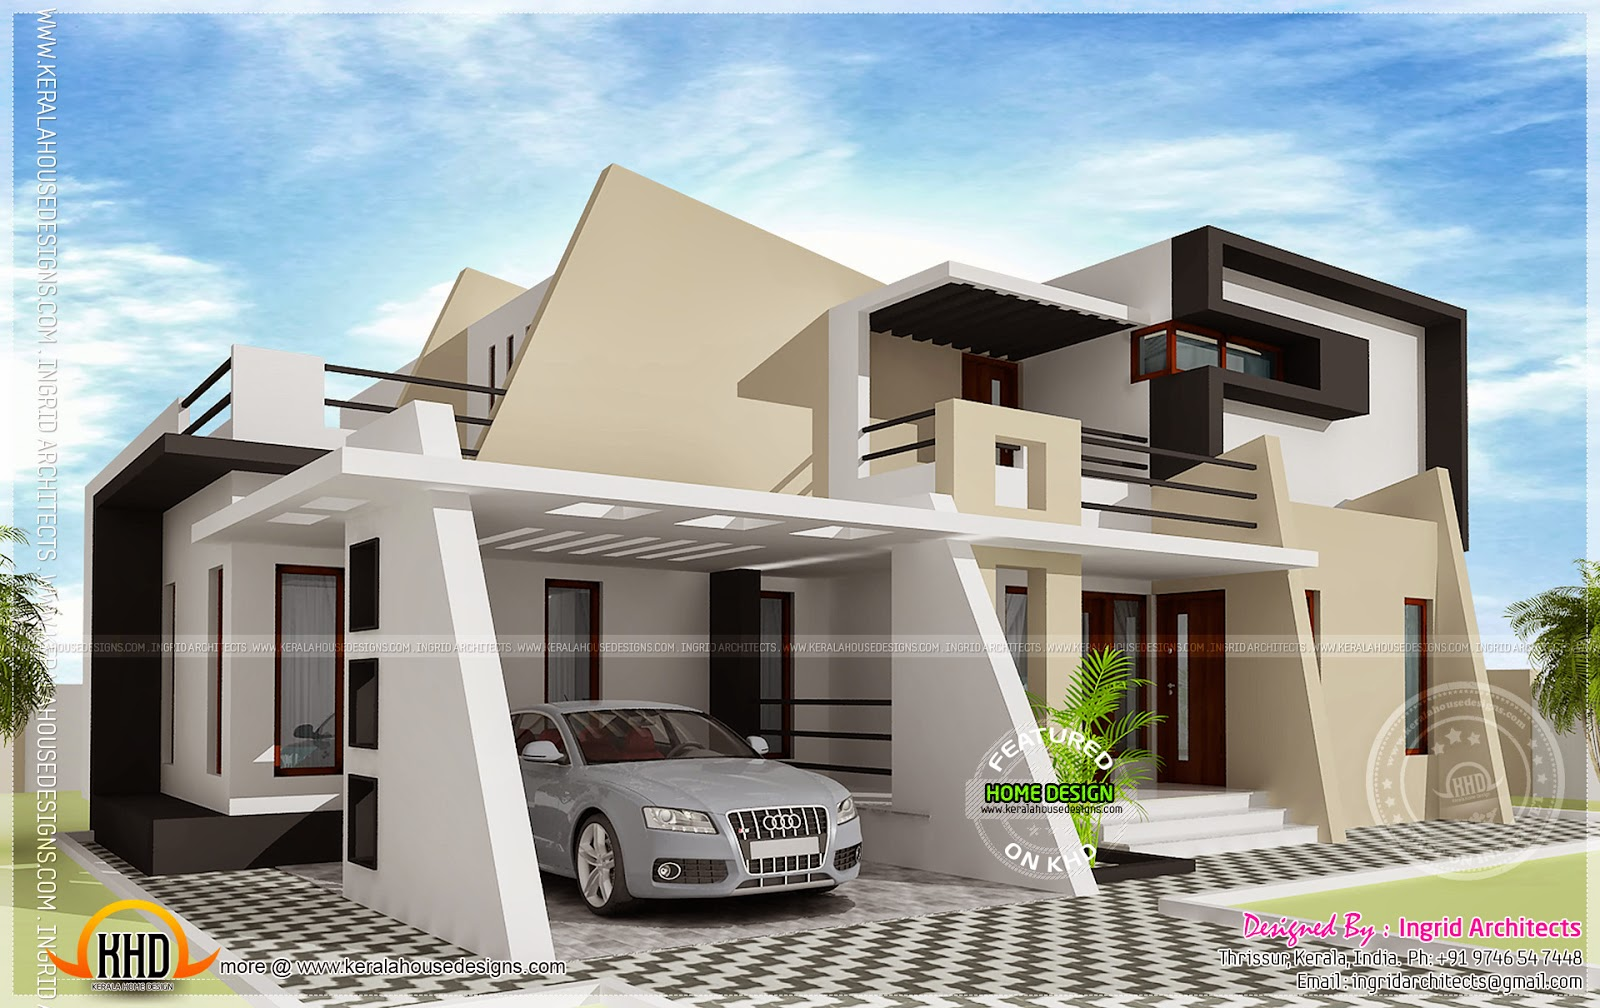 316 square meter contemporary home home kerala plans - Houses atticsquare meters ...